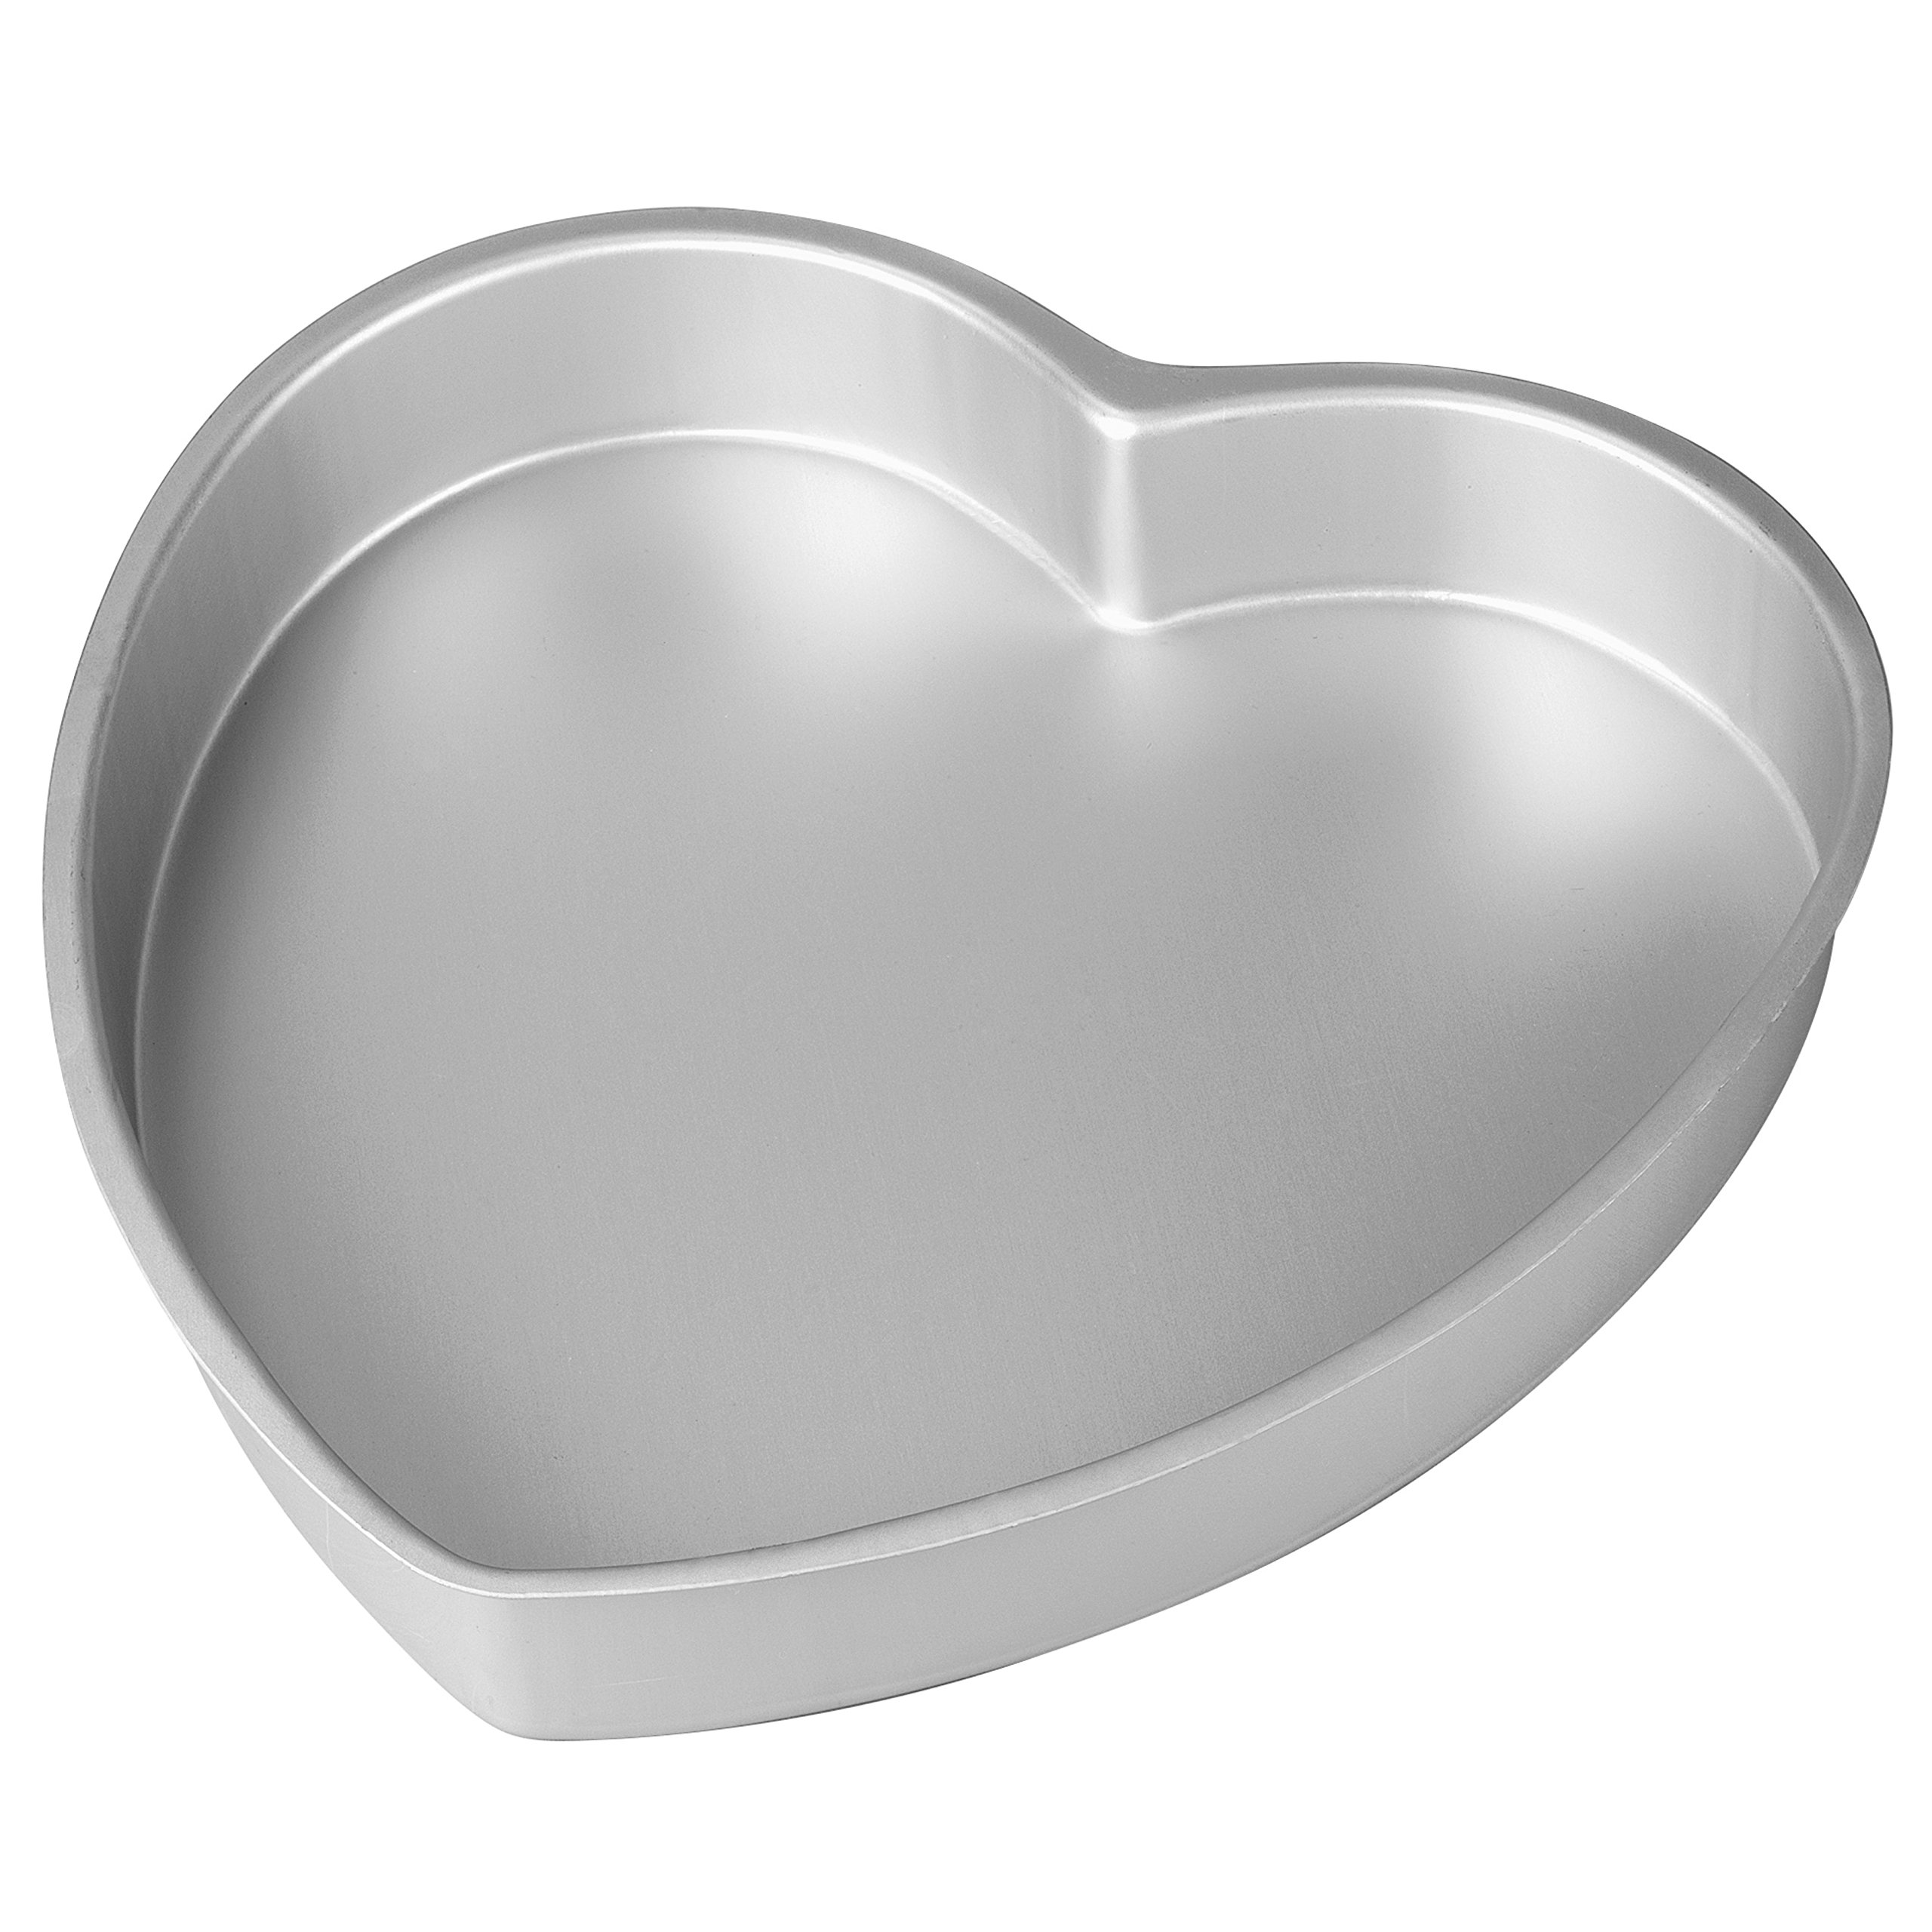 Wilton Aluminum Heart Shaped Cake Pan, 8 inch